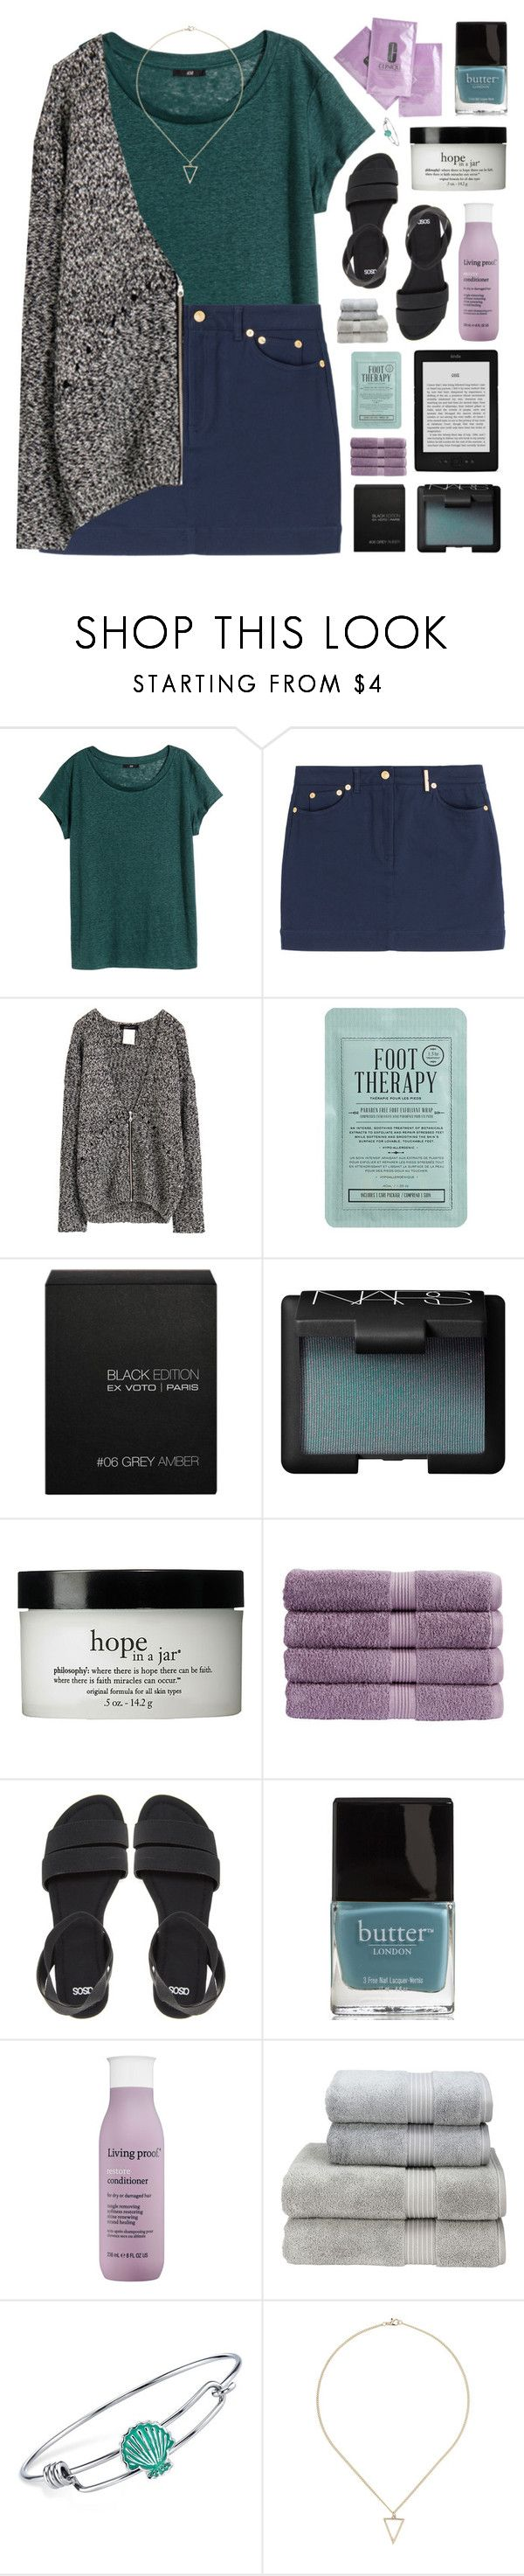 """""""SUGAR VENOM"""" by emmas-fashion-diary ❤ liked on Polyvore featuring H&M, Kenzo, Kocostar, Ex Voto Paris, NARS Cosmetics, philosophy, Christy, ASOS, Butter London and Living Proof"""